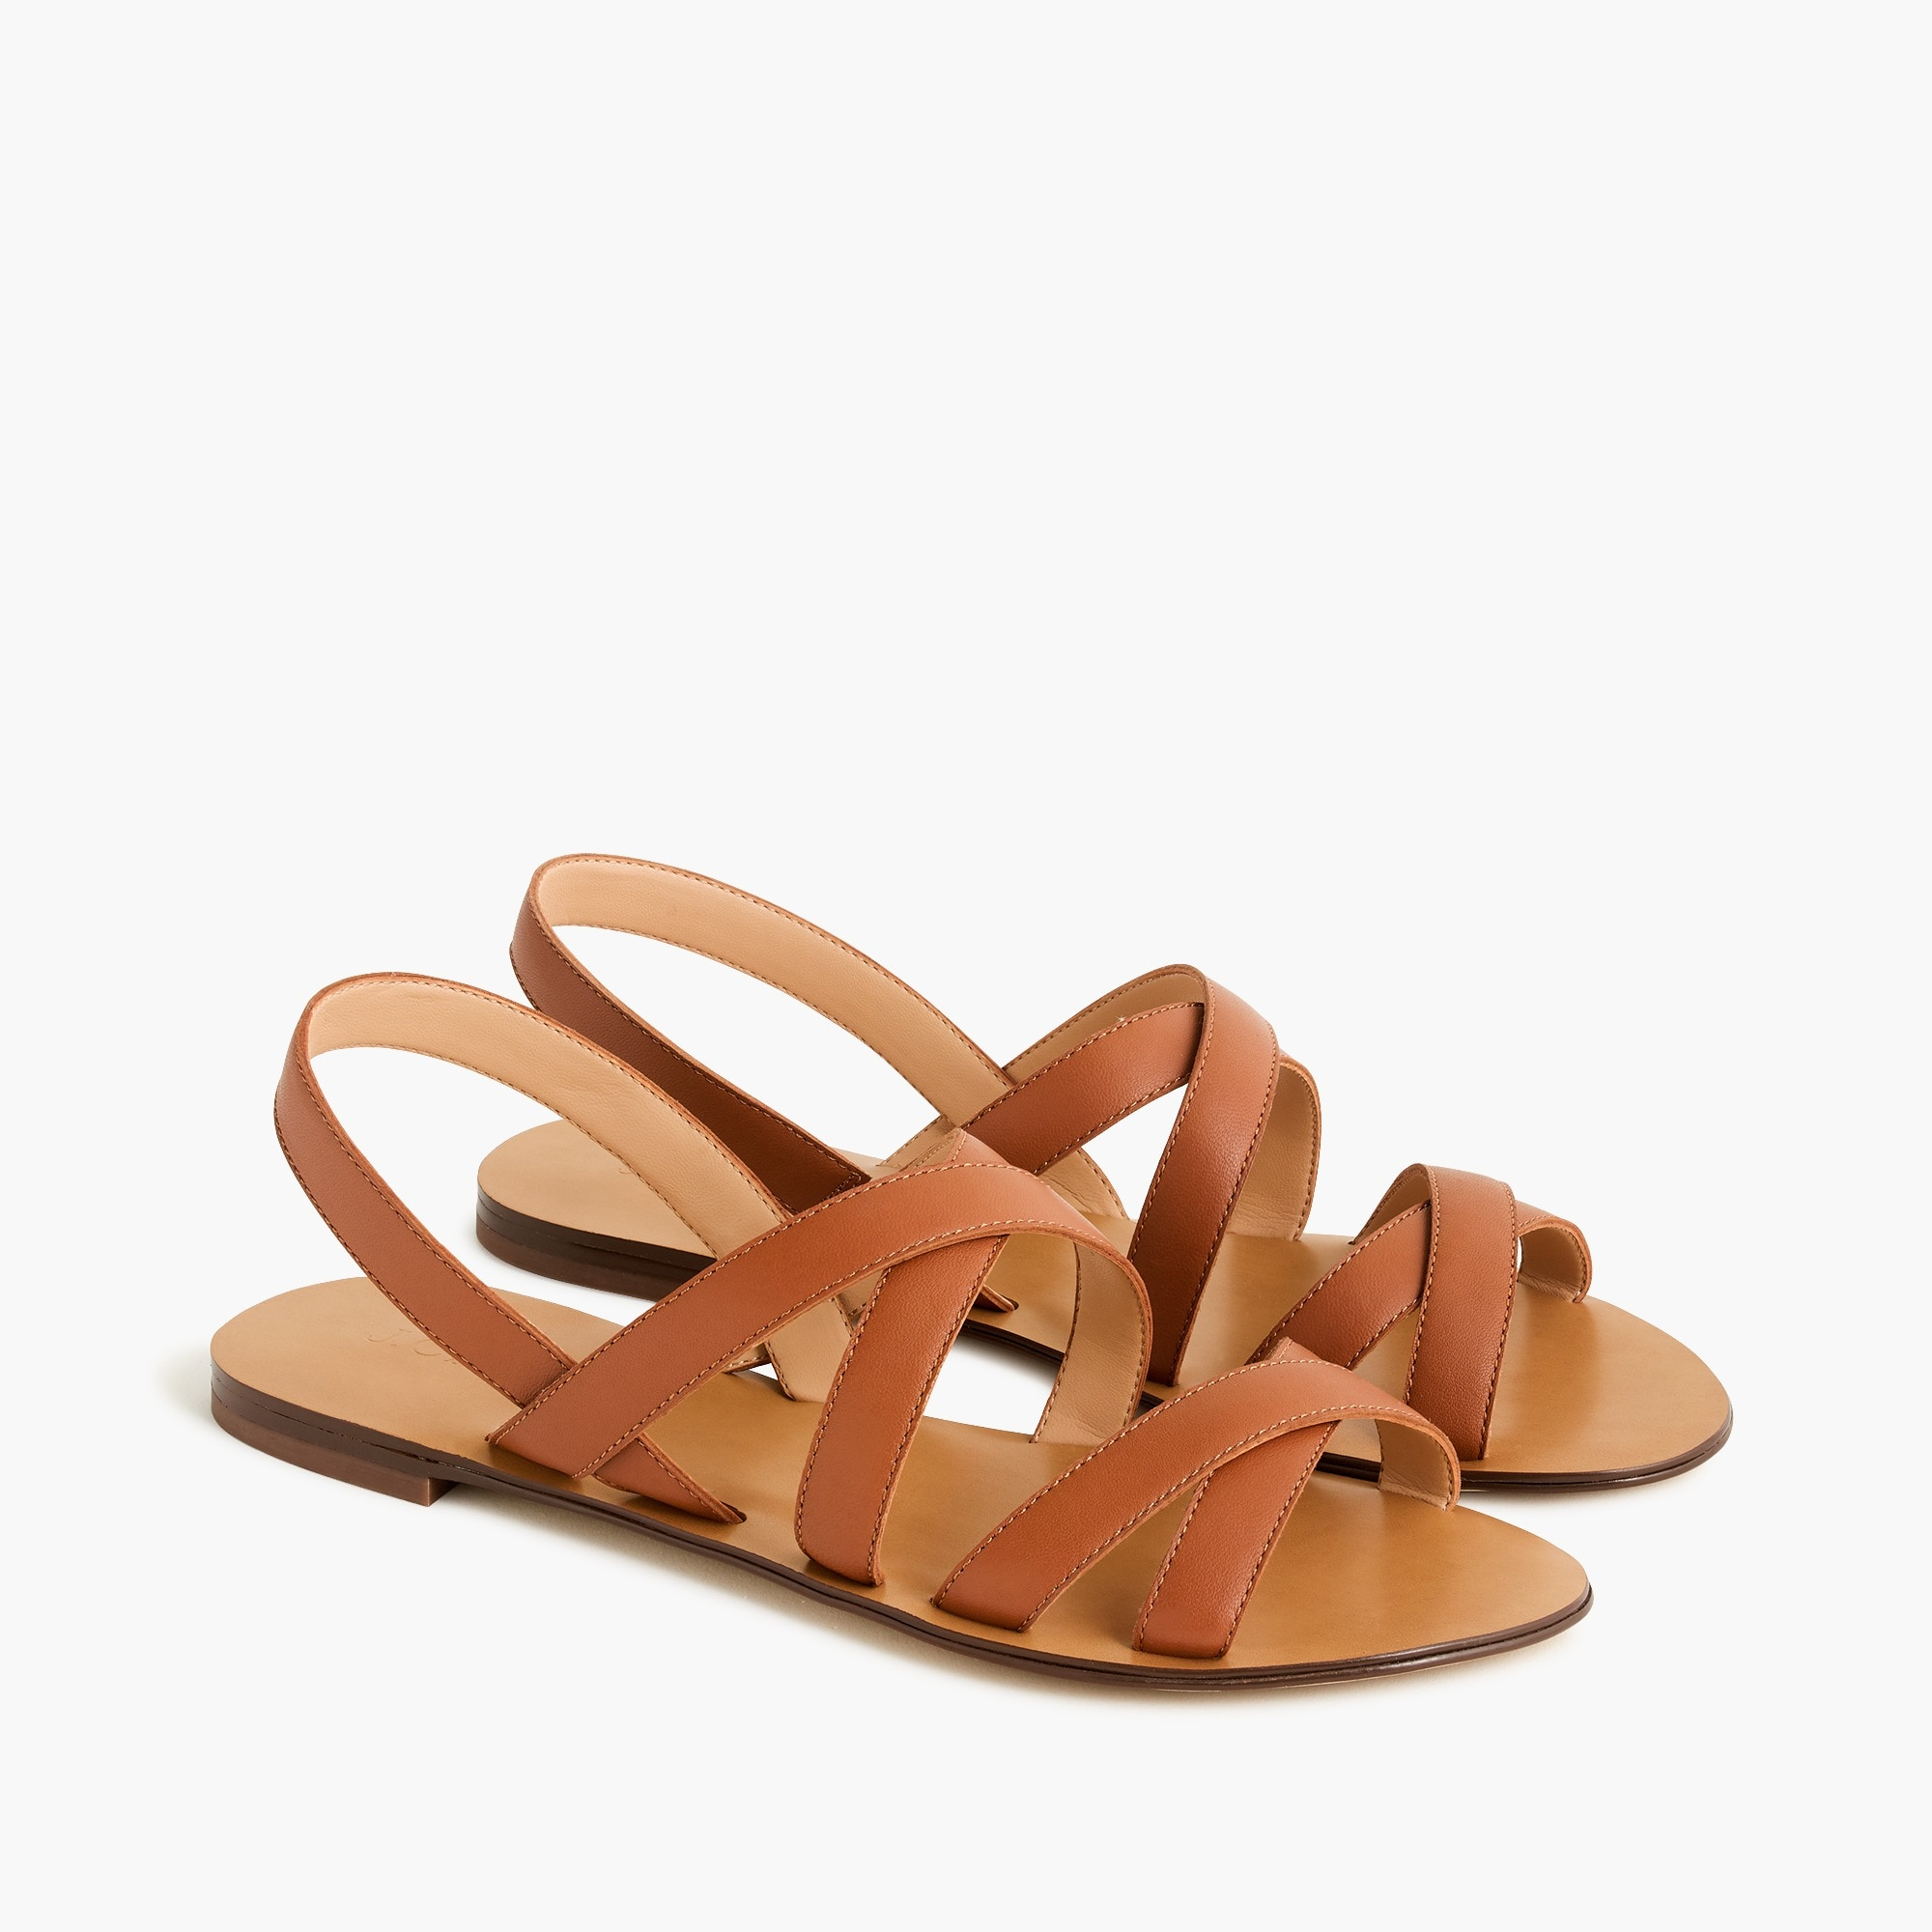 women's cross-strap sandals in leather - women's sandals